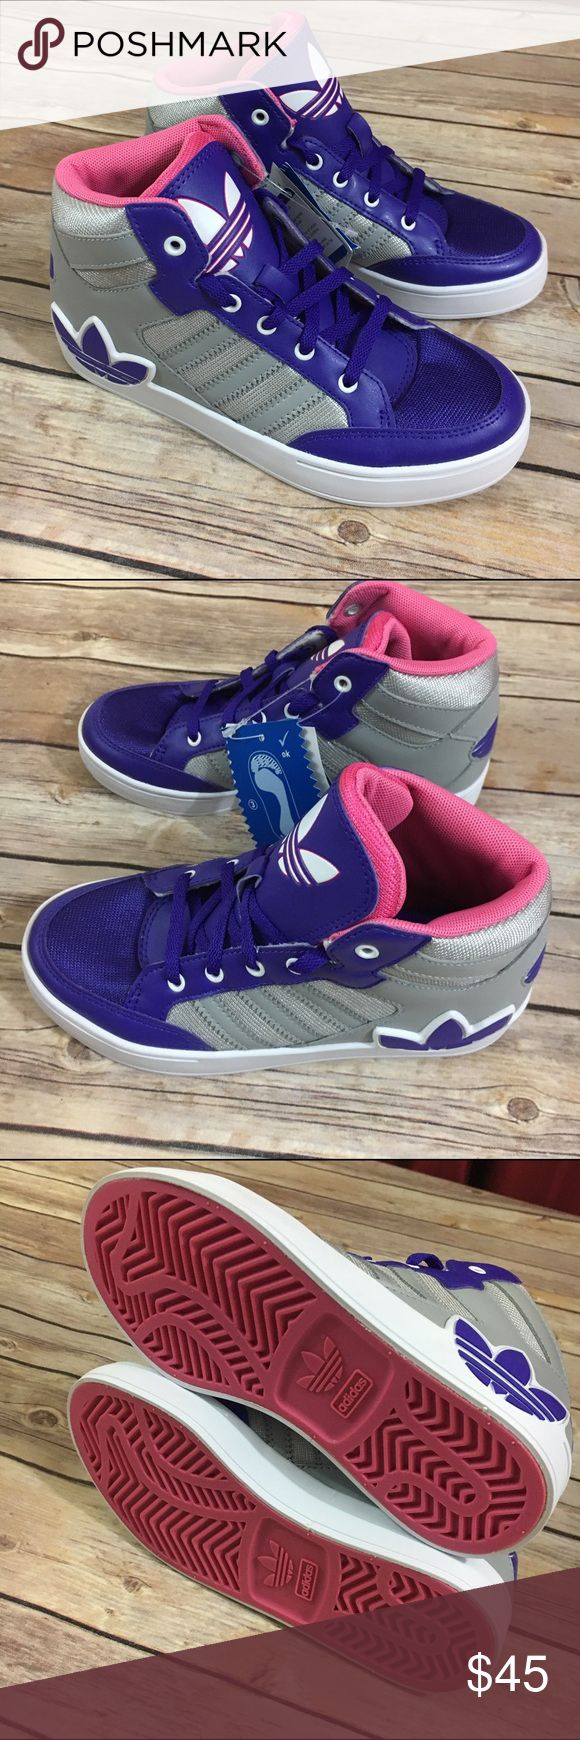 Adidas Hard Court Hi C Big Trefoil Logo Pink Gray Adidas Hard Court Hi C Big Trefoil Logo Pink Purple Gray 1 Girls  Beautiful high top sneakers with hook and loop fastener and lace up.  New condition.  #adidas #hardcourt #bigtref #purple #gray #hightops #basketball #kicks #coolkicks #new #nib #shoes #basketballshoes #pink Adidas Shoes Sneakers